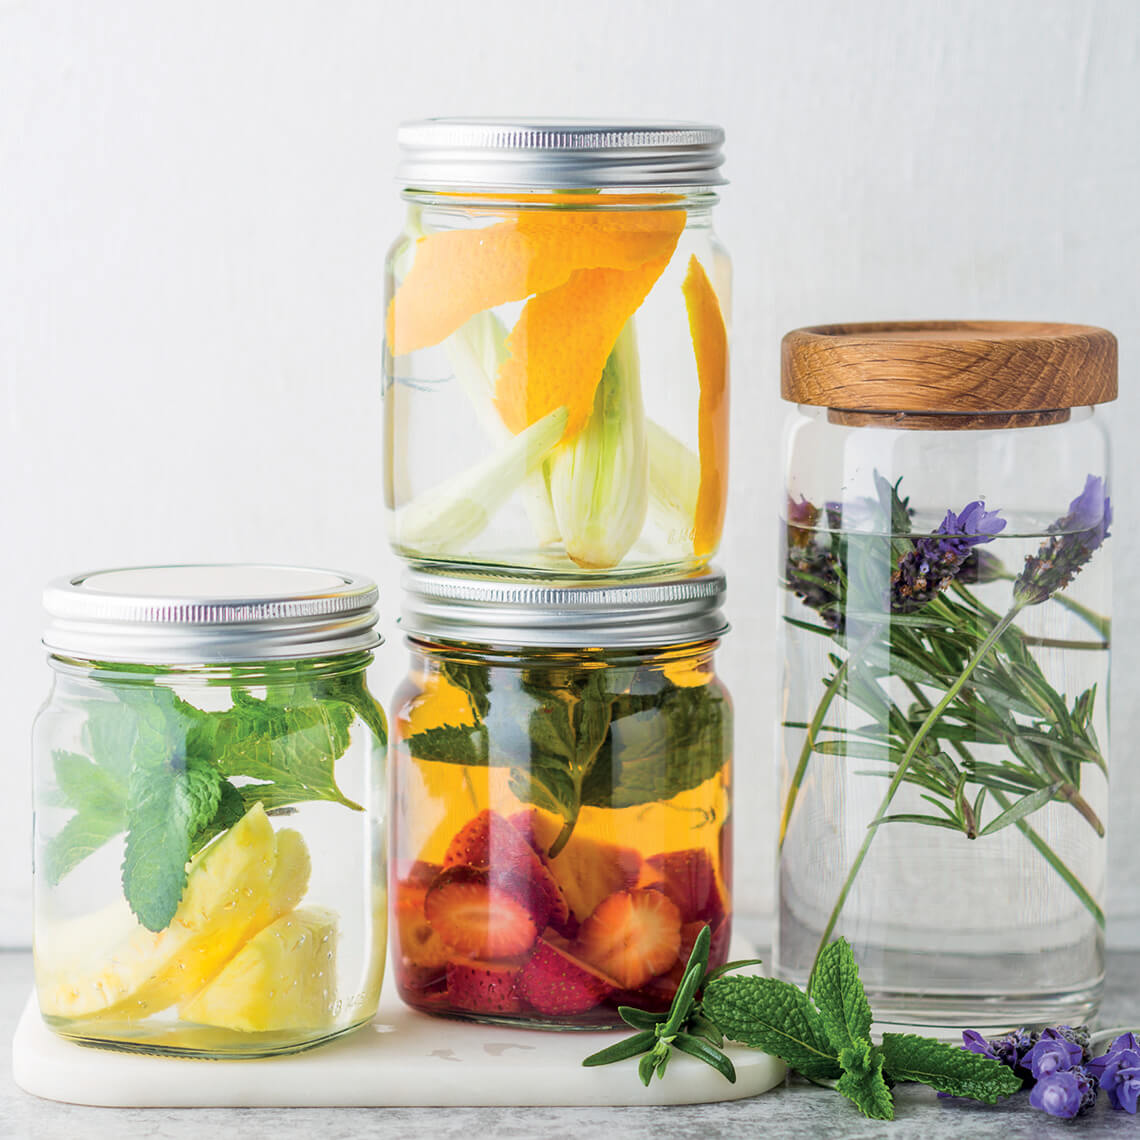 Infuse your booze